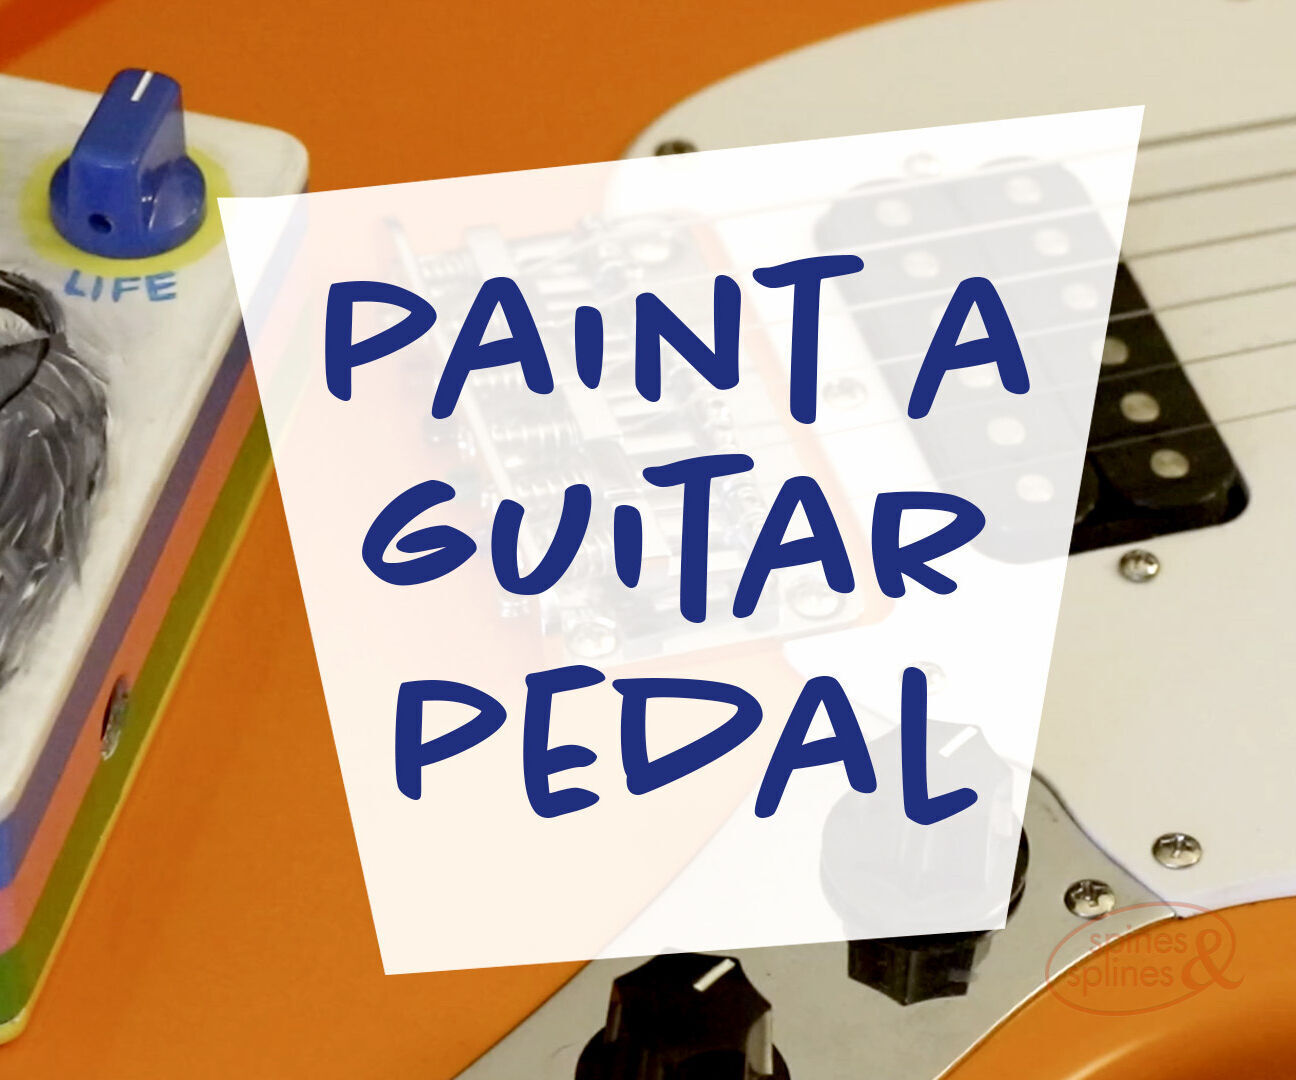 Hand Painting a Guitar Pedal